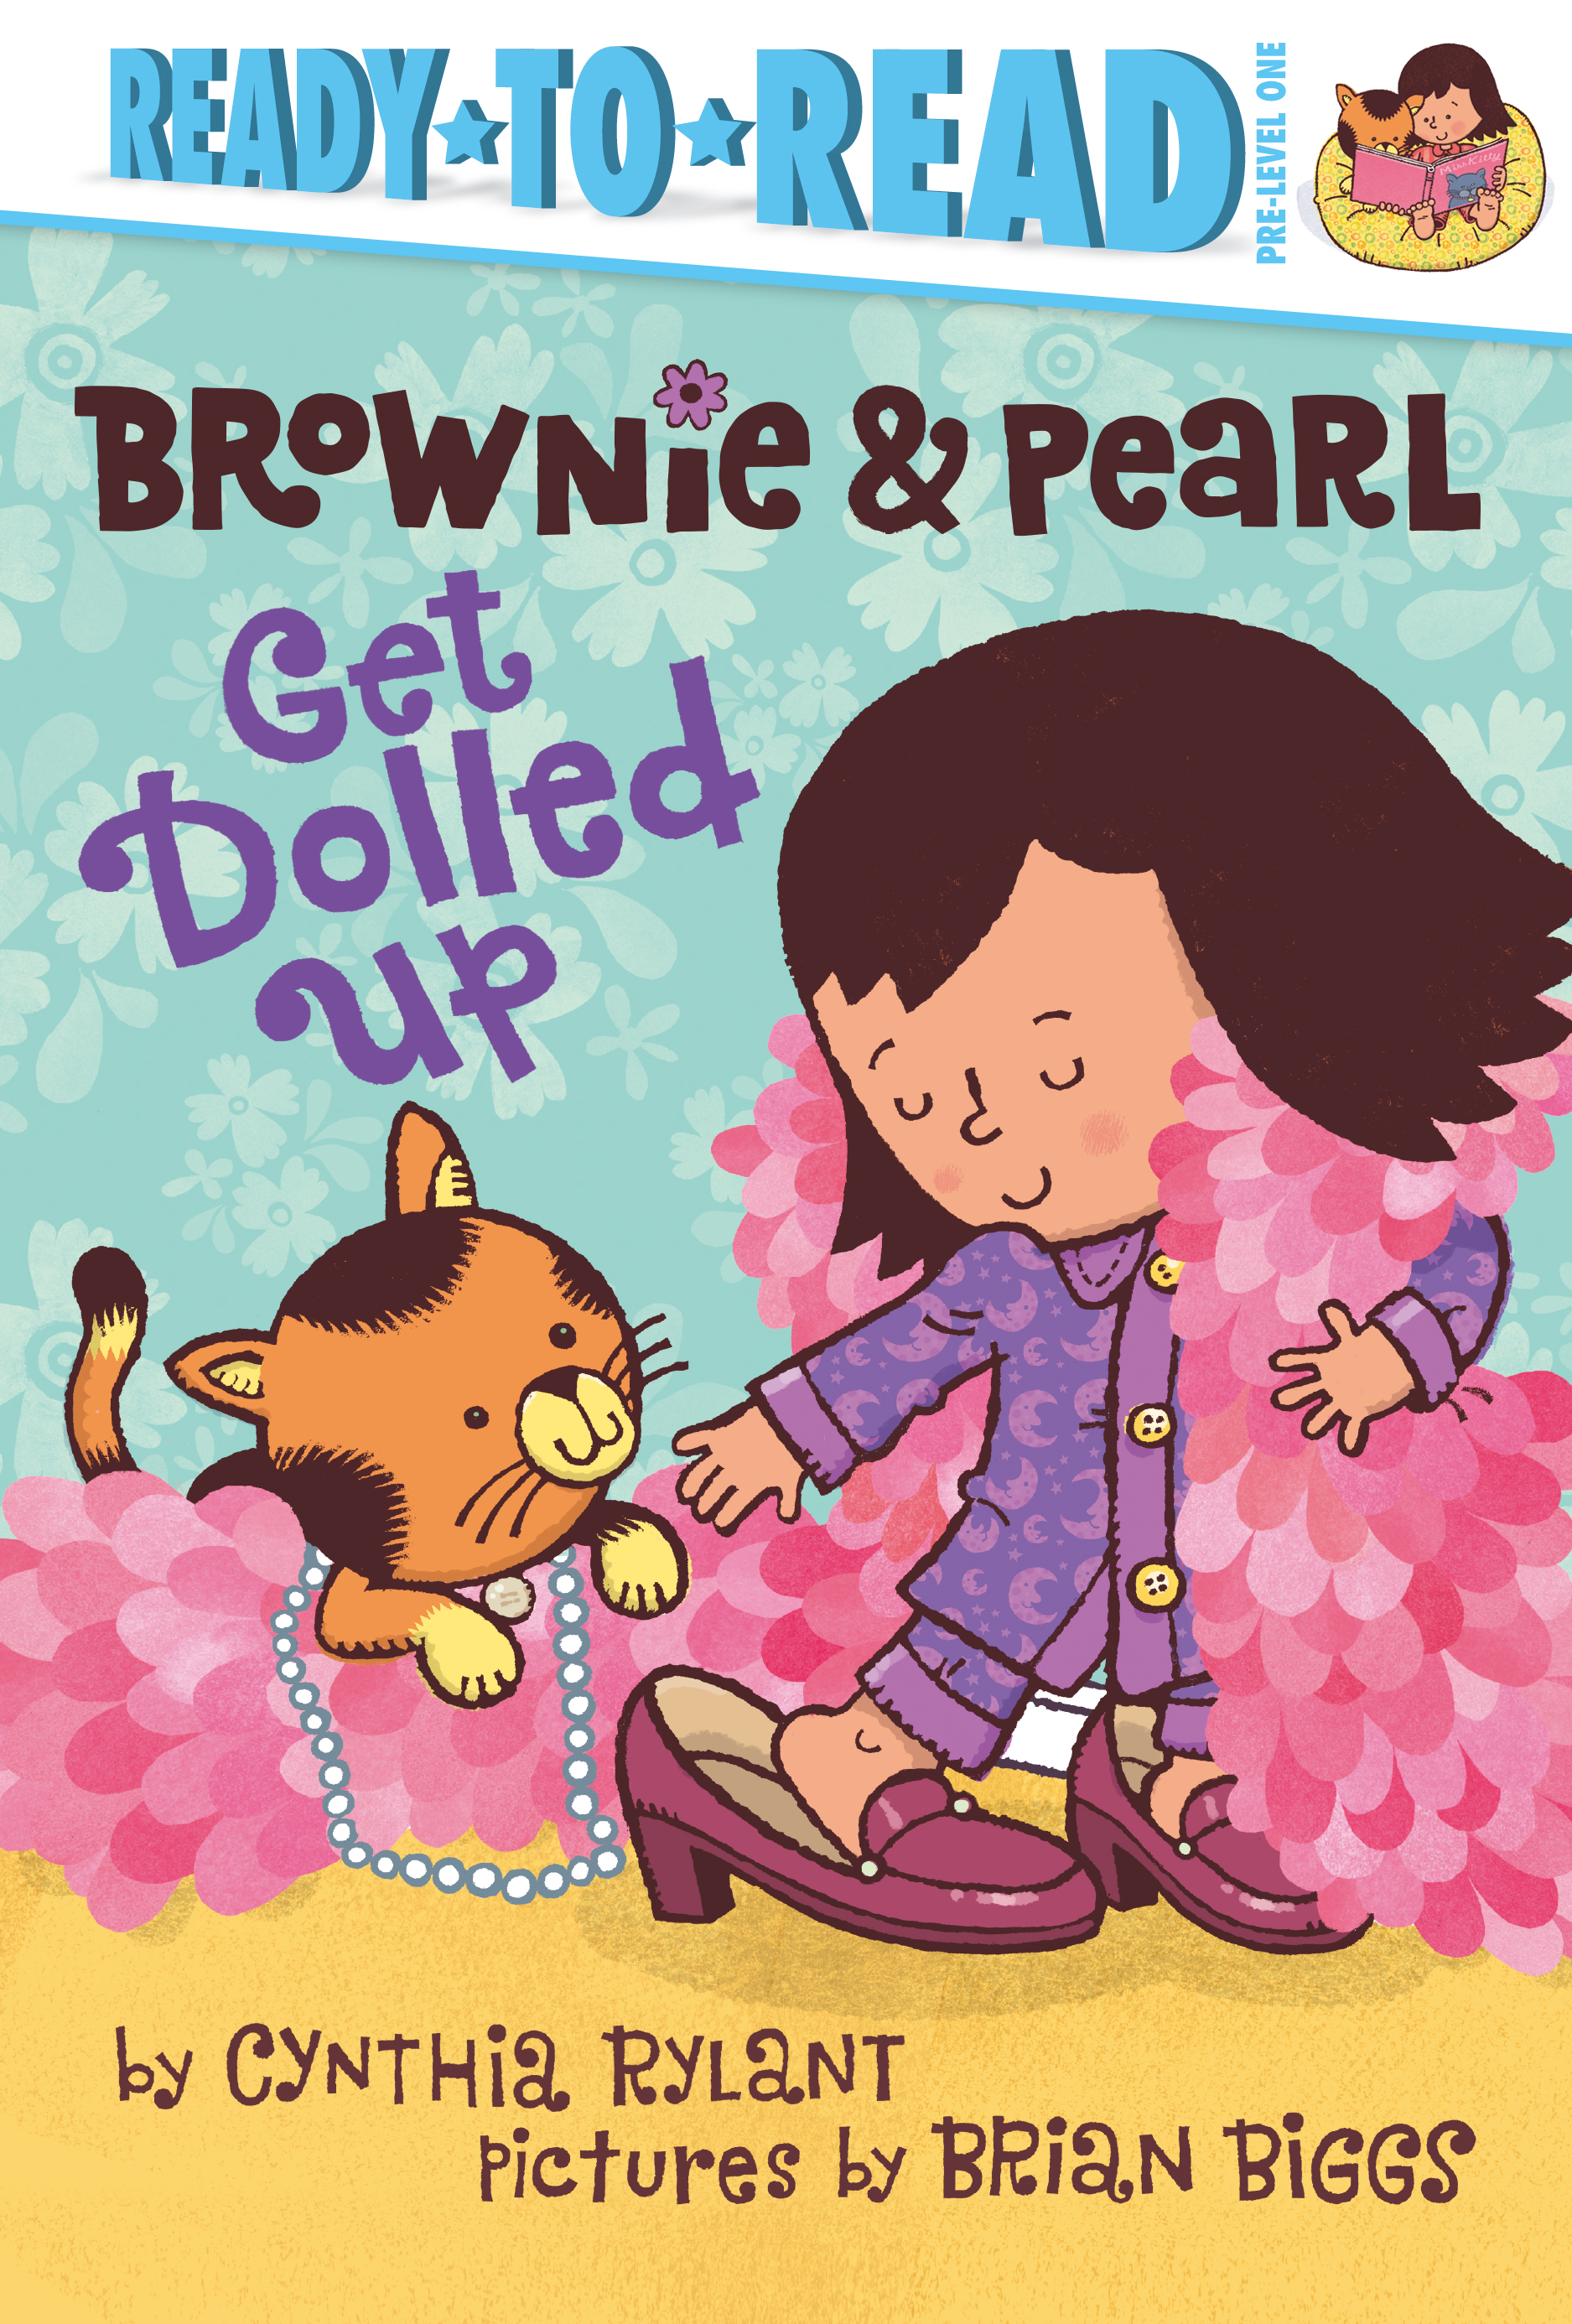 Brownie-pearl-get-dolled-up-9781442495685_hr